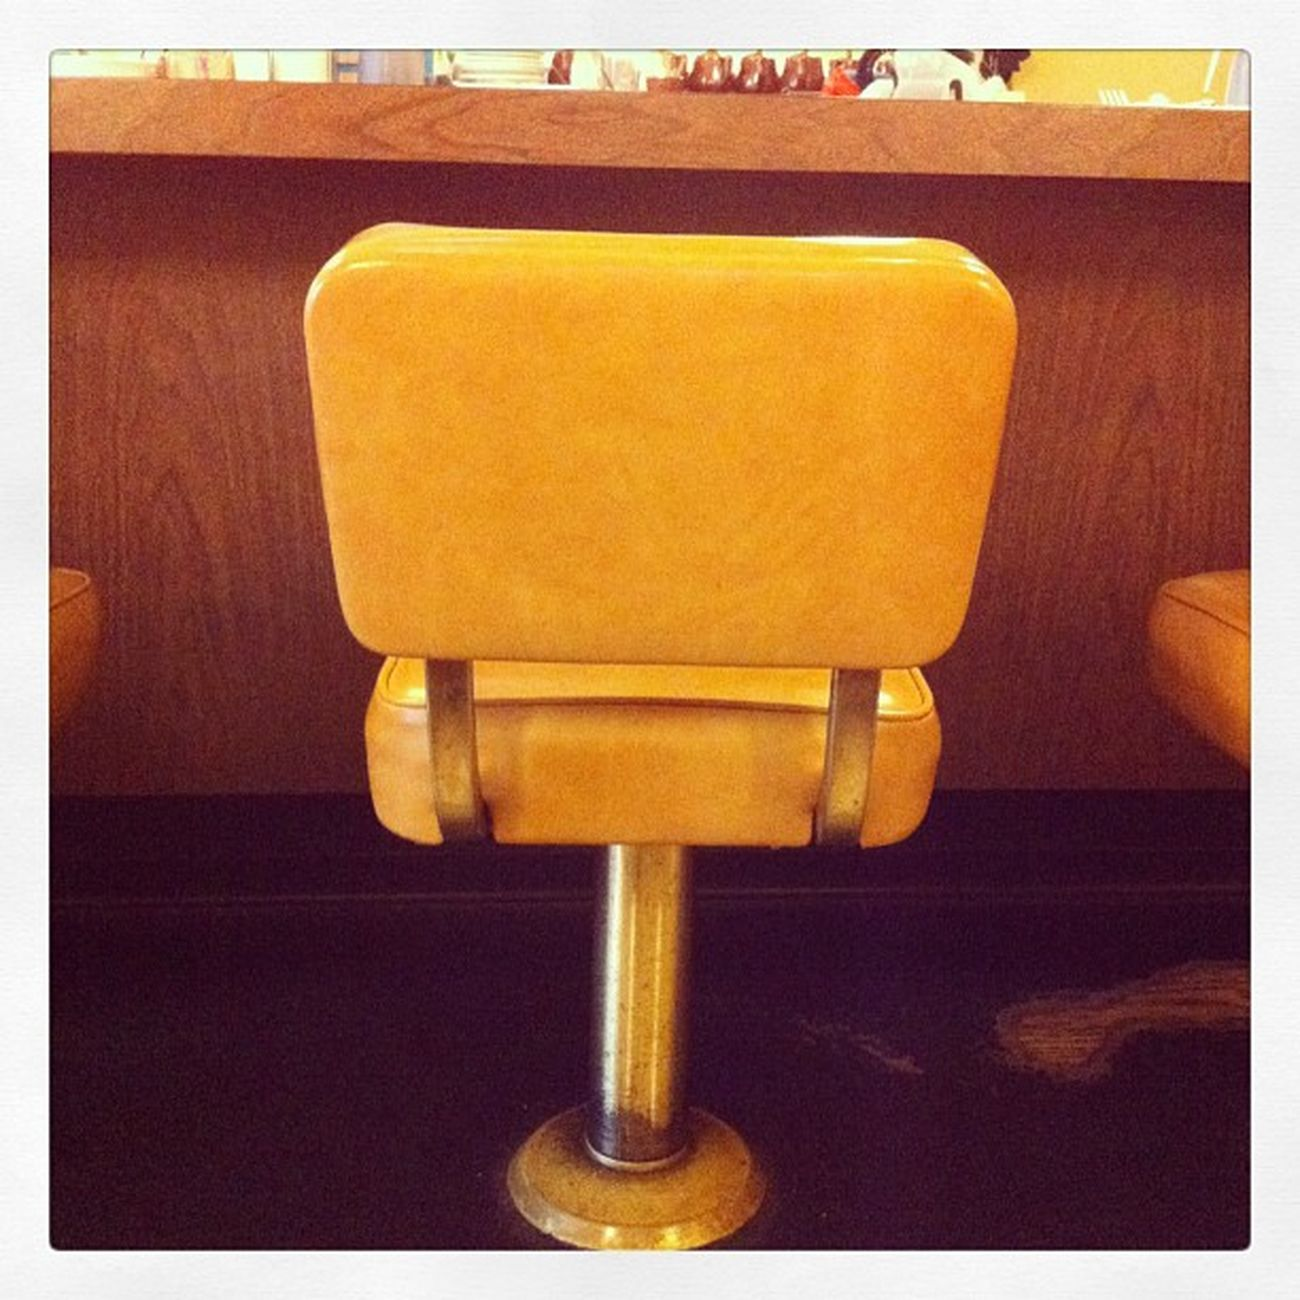 The lonely diner barstool #dinertour #homefortheholidays Dinertour Homefortheholidays